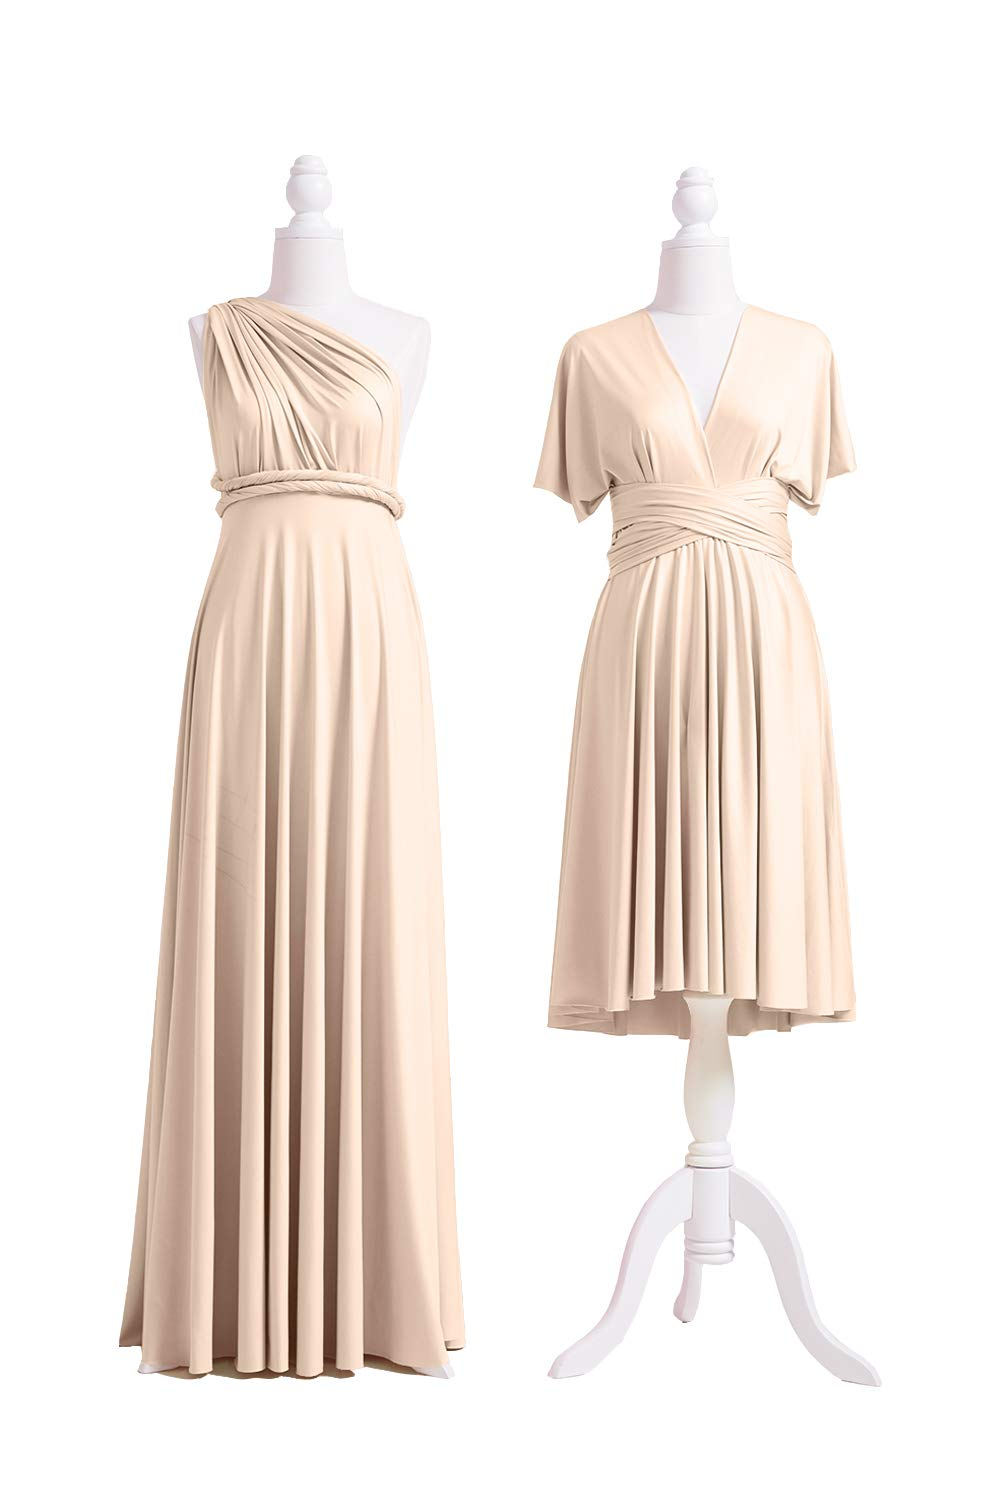 72STYLES Champagne Infinity Dress with Bandeau, Convertible Dress,  Bridesmaid Dress, Long,Short, Plus Size, Multi-Way Dress, Twist Wrap Dress